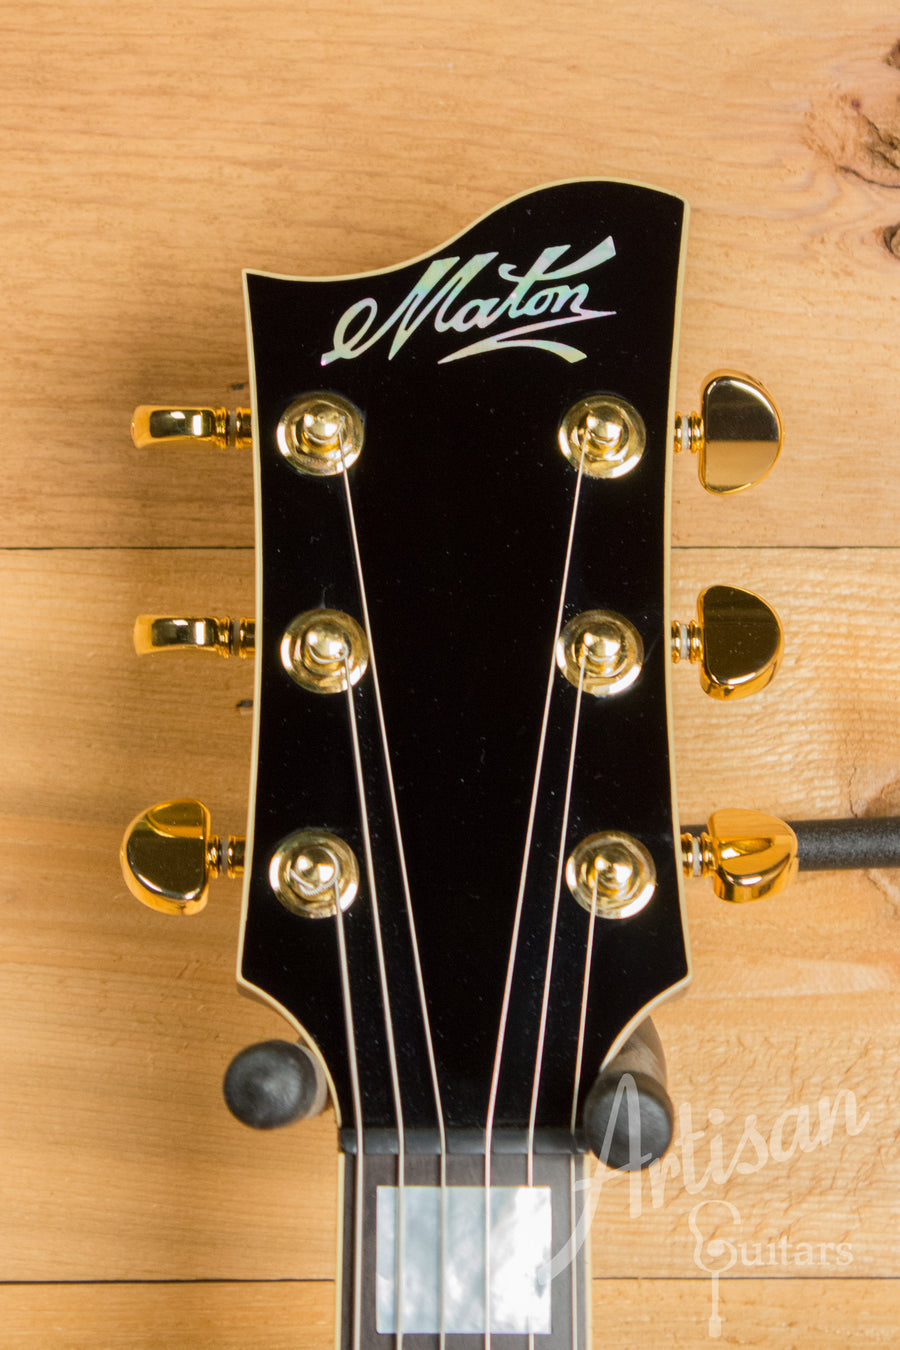 Maton BB1200 Deluxe Electric Guitar Gloss Black Finish Pre-Owned 2012 ID-11217 - Artisan Guitars